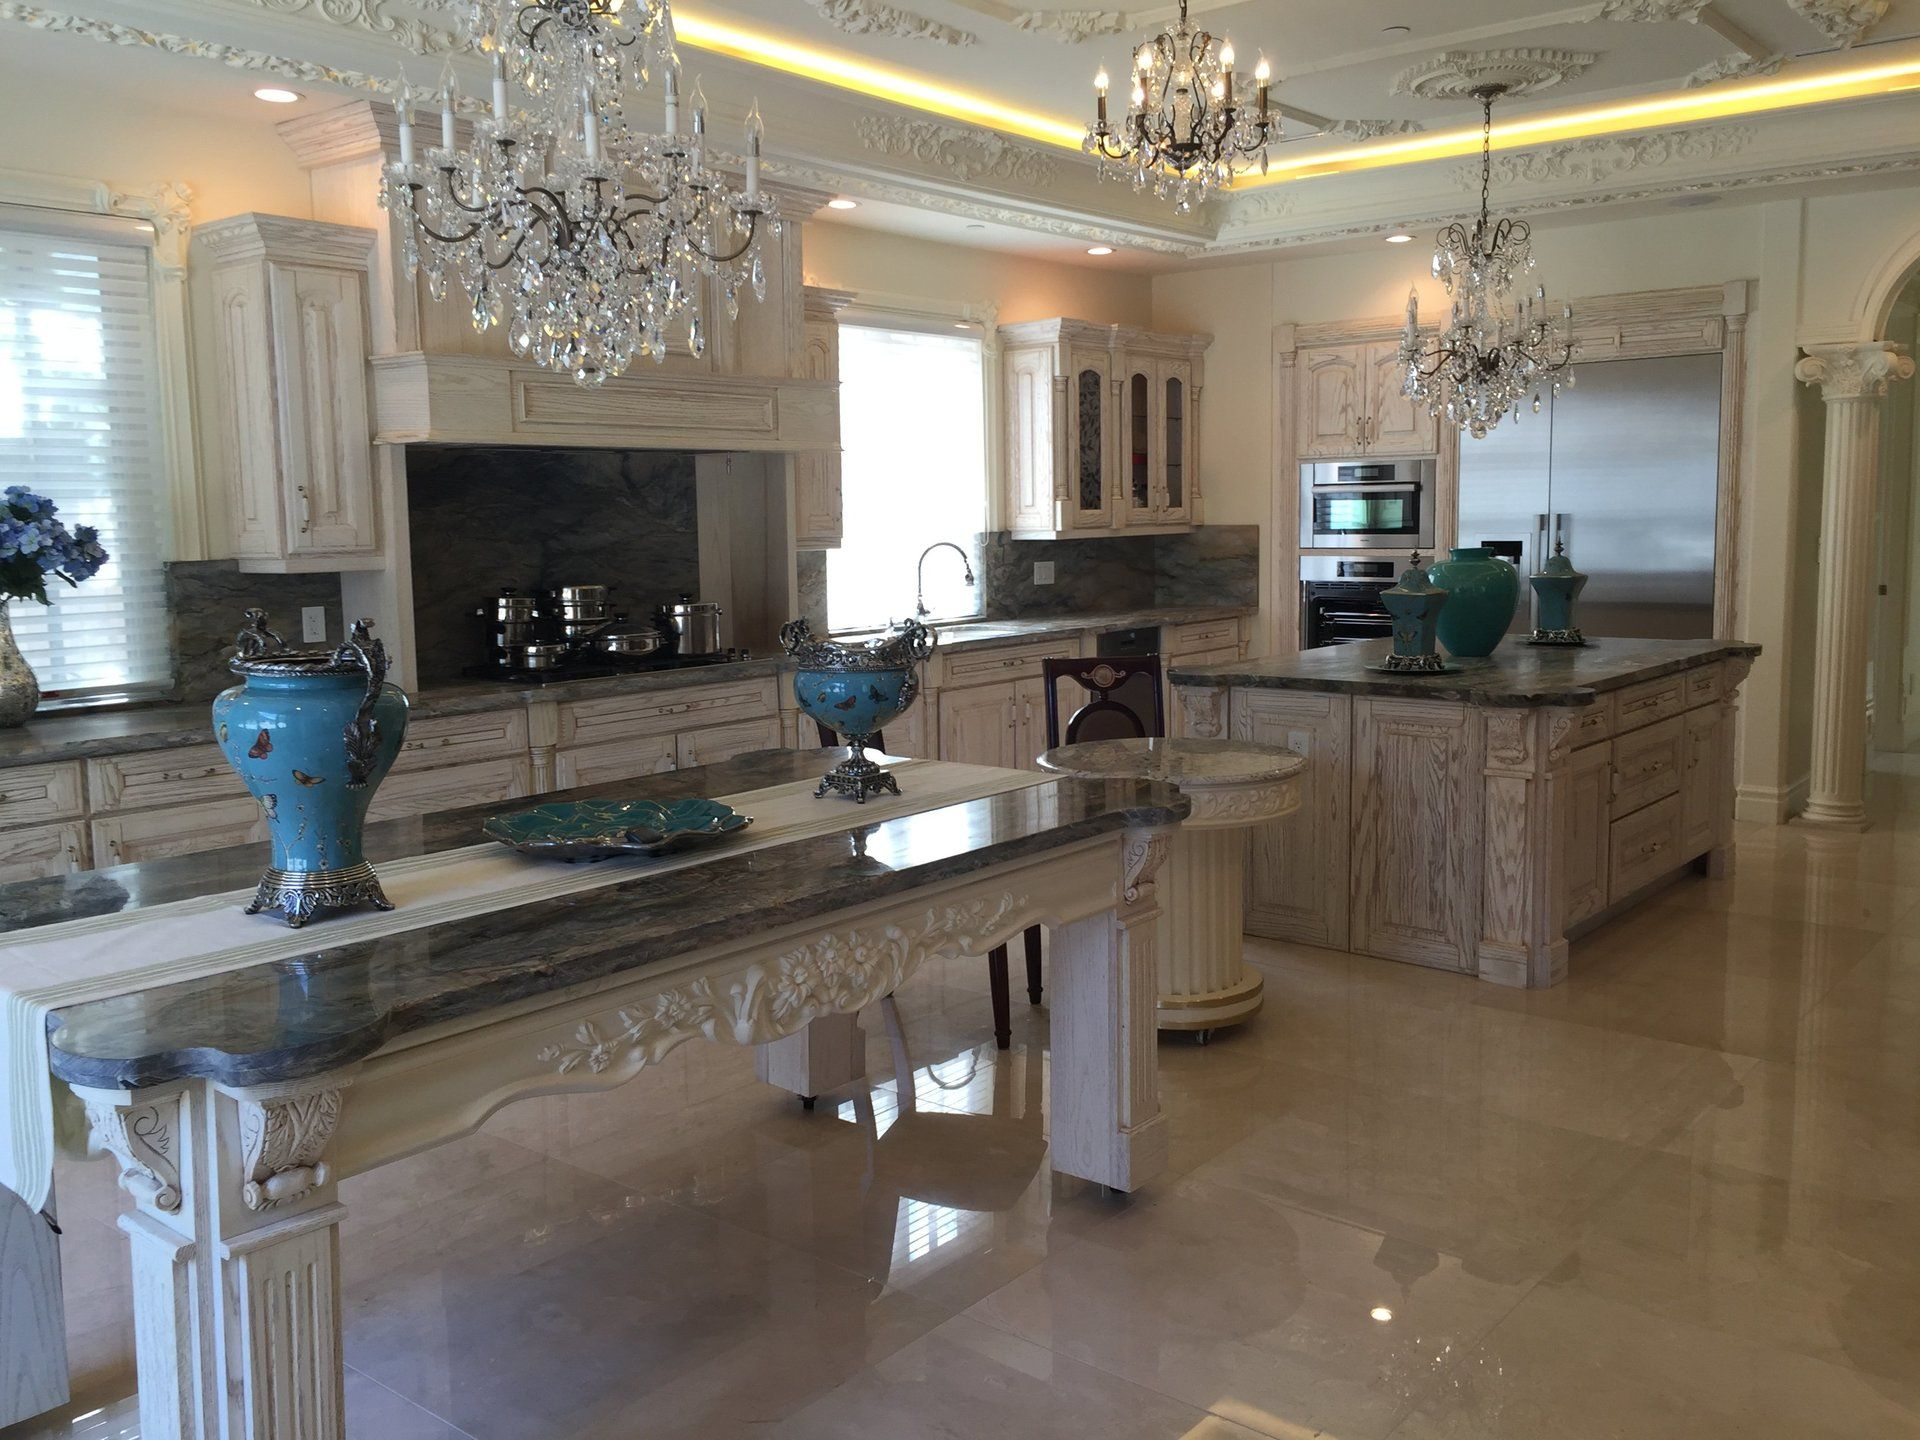 My Kitchen Cabinet | Countertops | City of Industry, CA